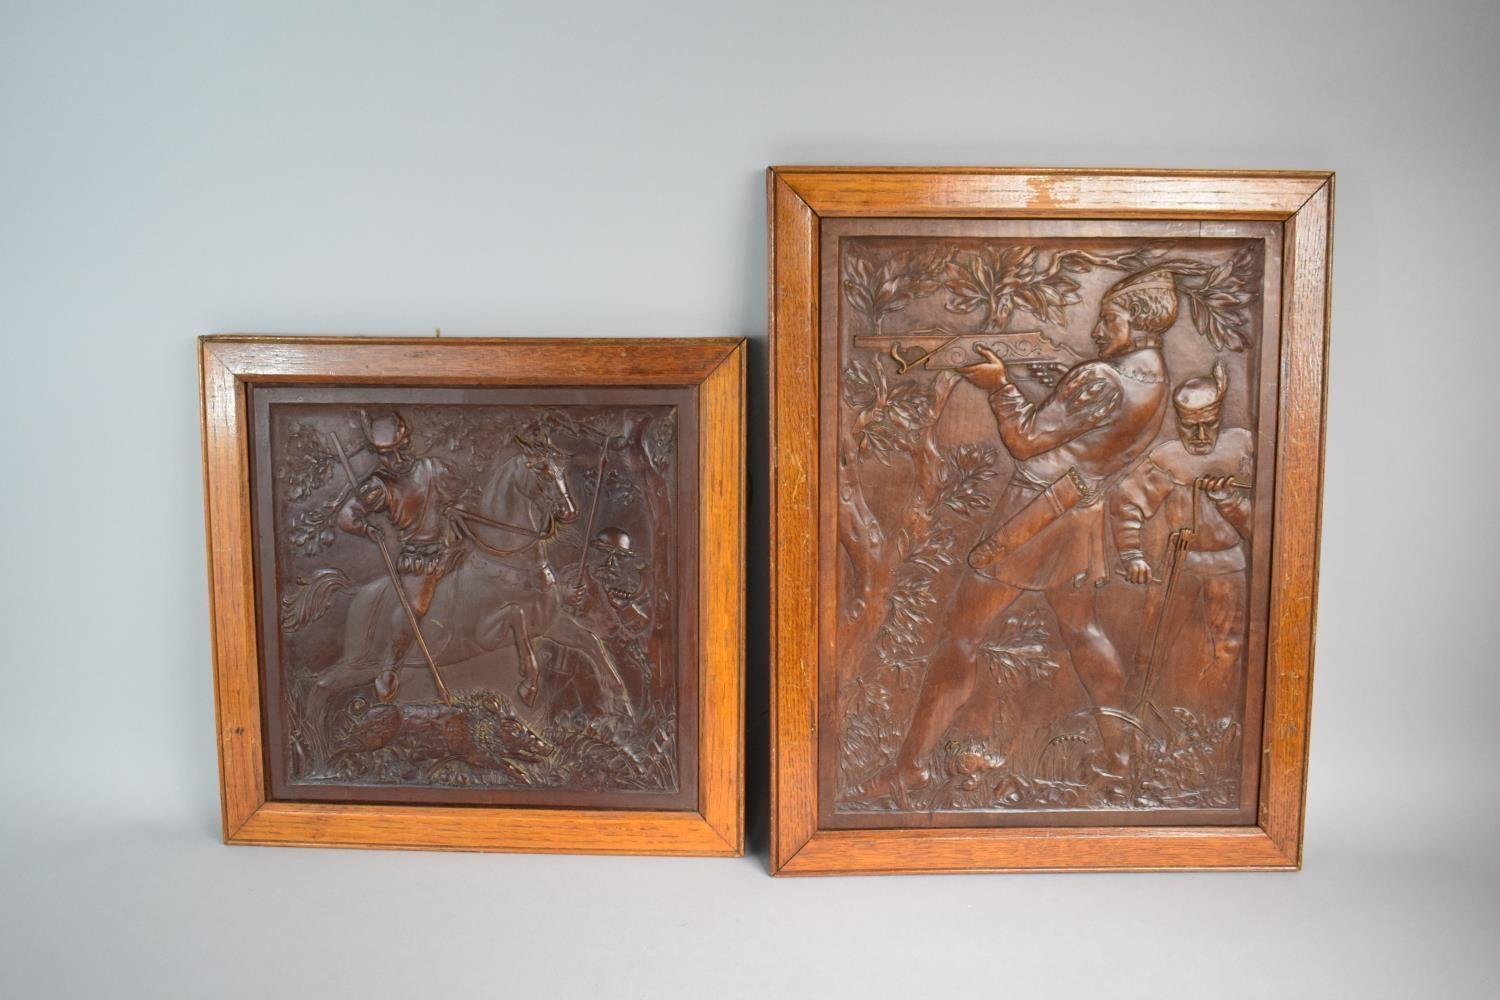 Lot 43 - Two Good Quality Oak Framed Continental Carved Walnut Panels Depicting Huntsman with Crossbow